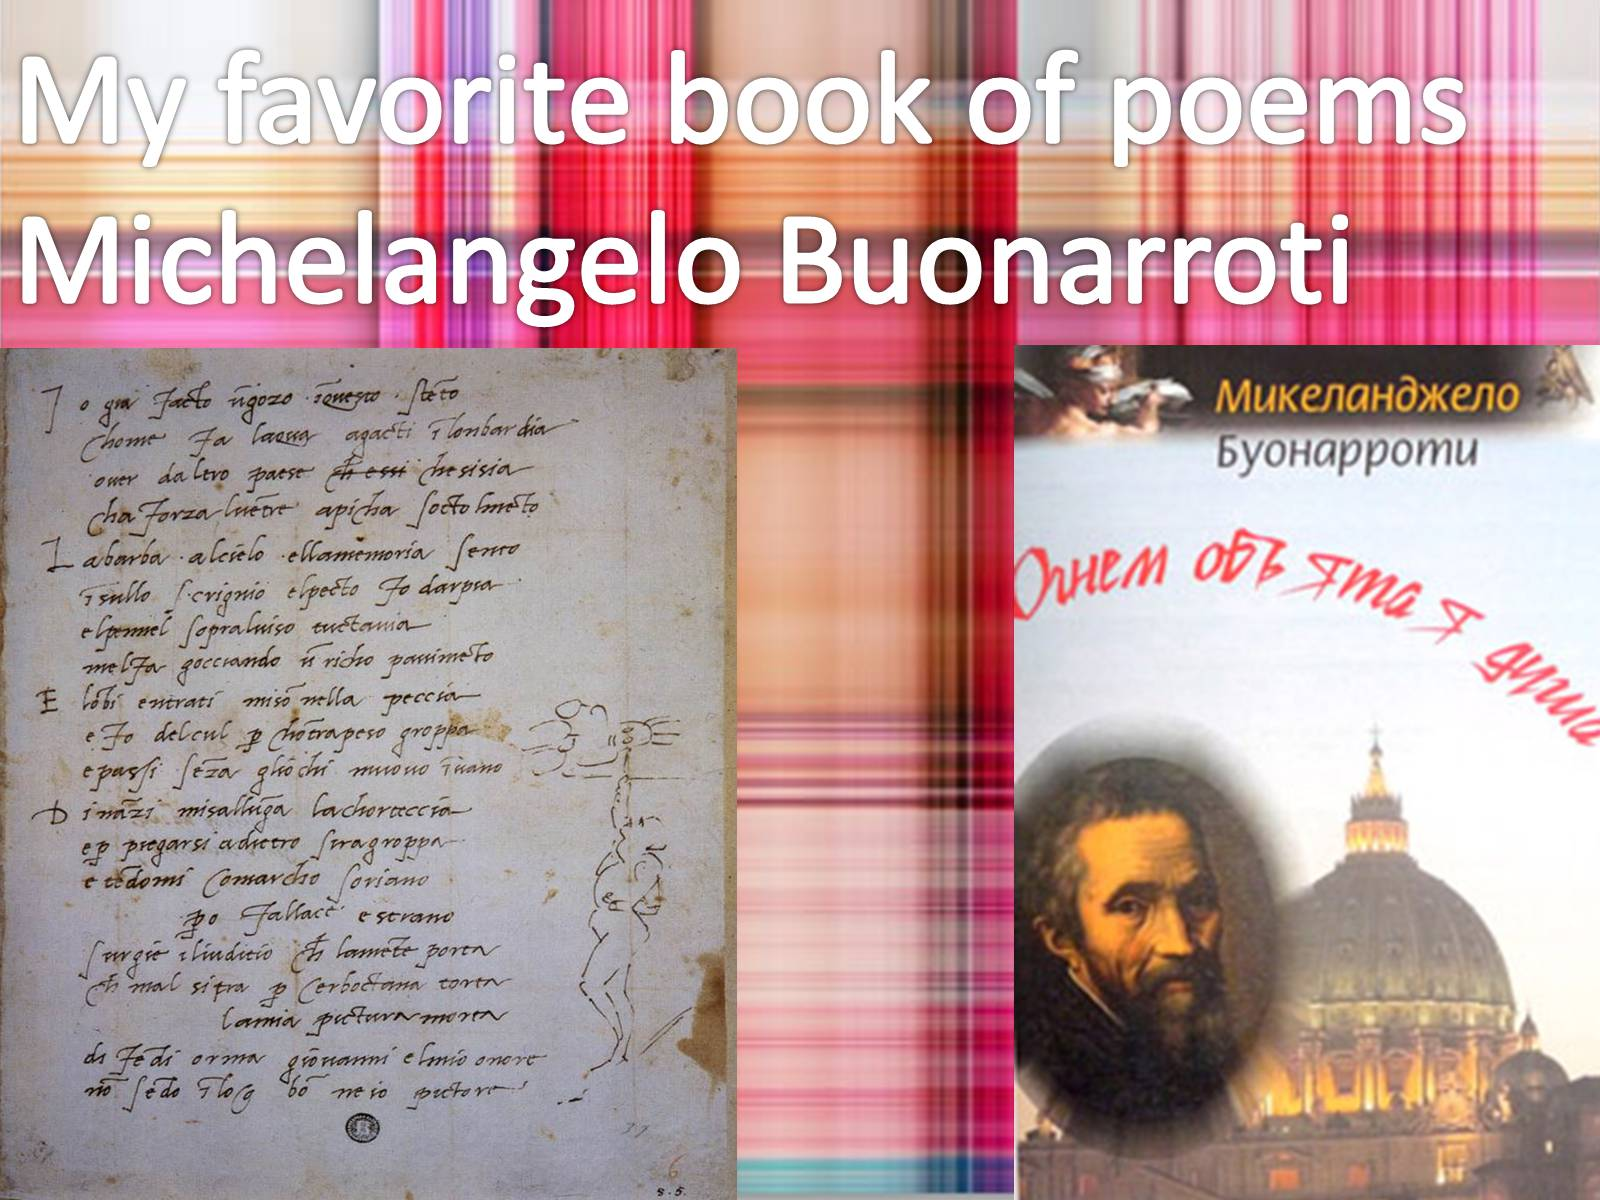 Презентація на тему «Мy favorite book of poems Michelangelo Buonarroti»